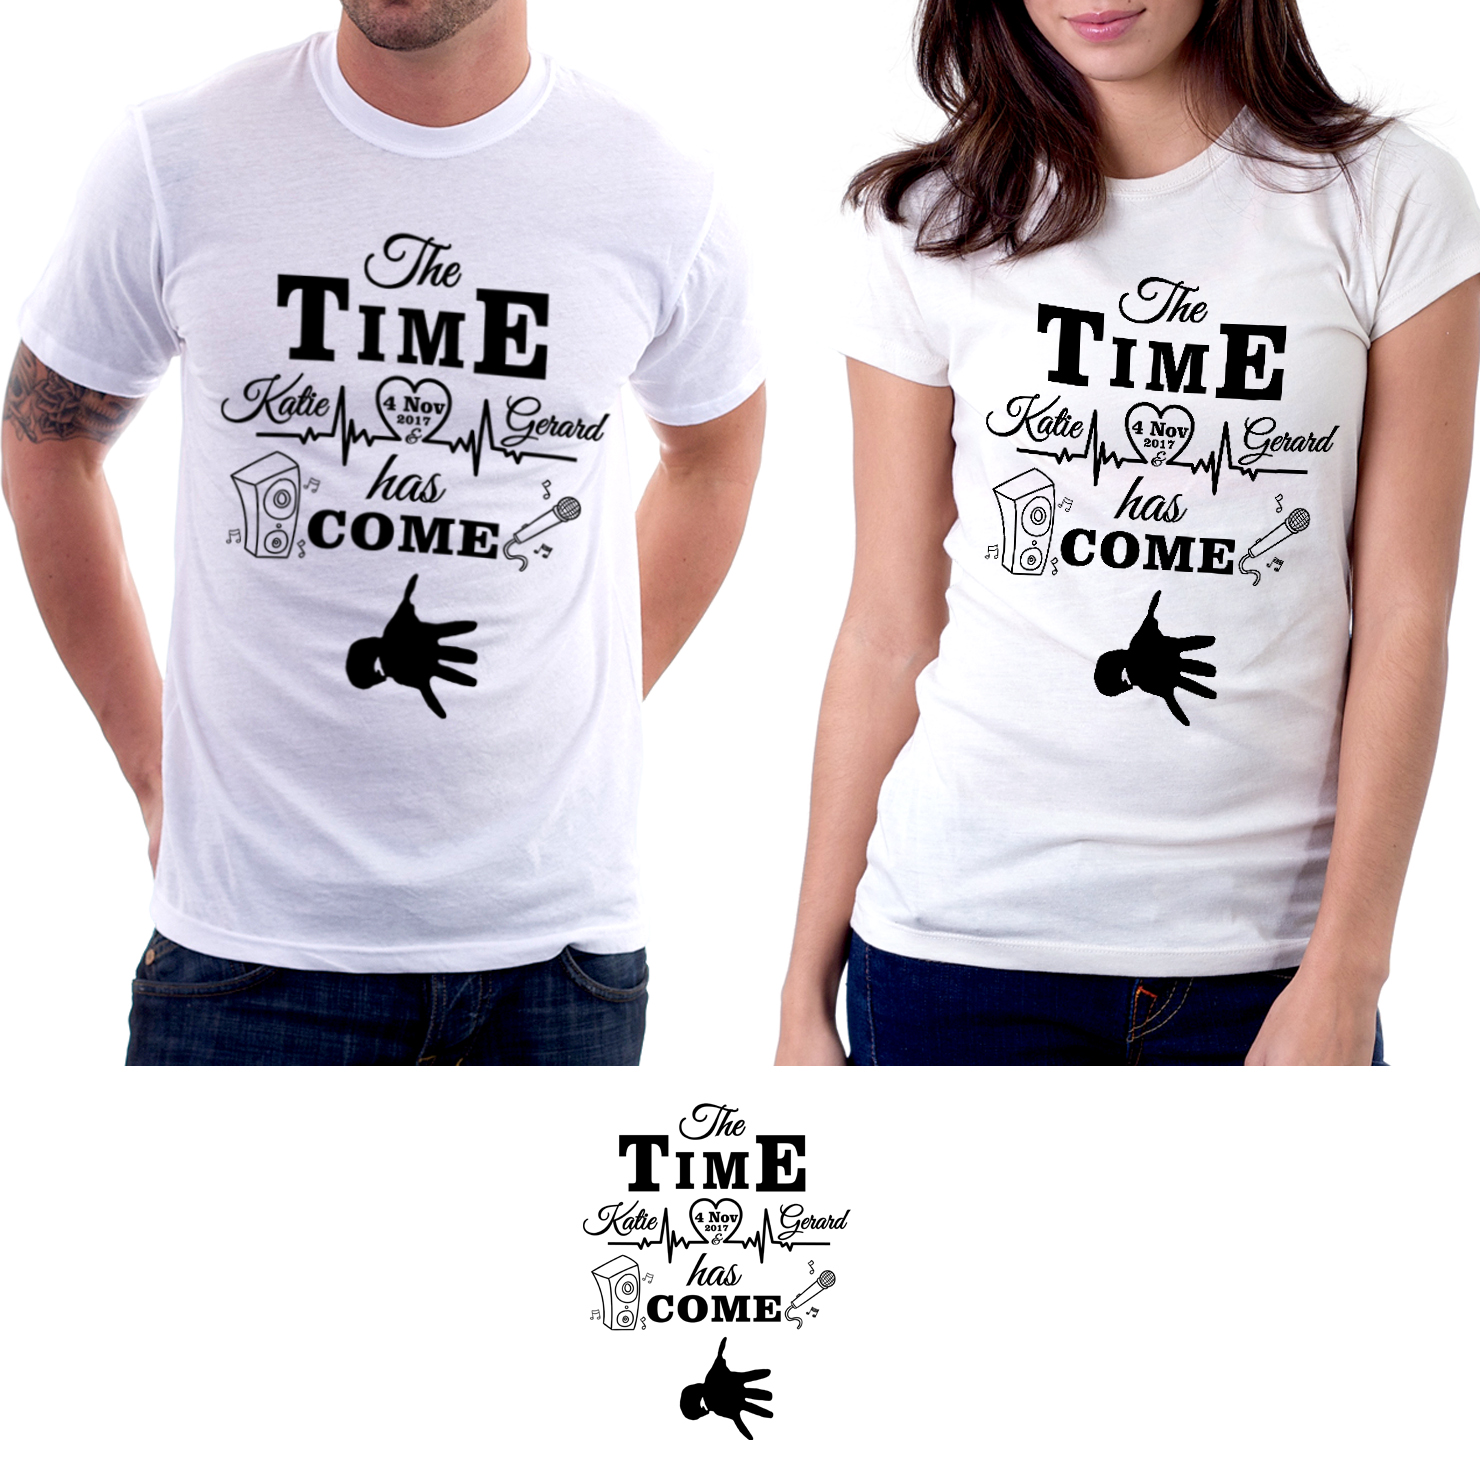 Personable Playful Wedding T Shirt Design For A Company By G